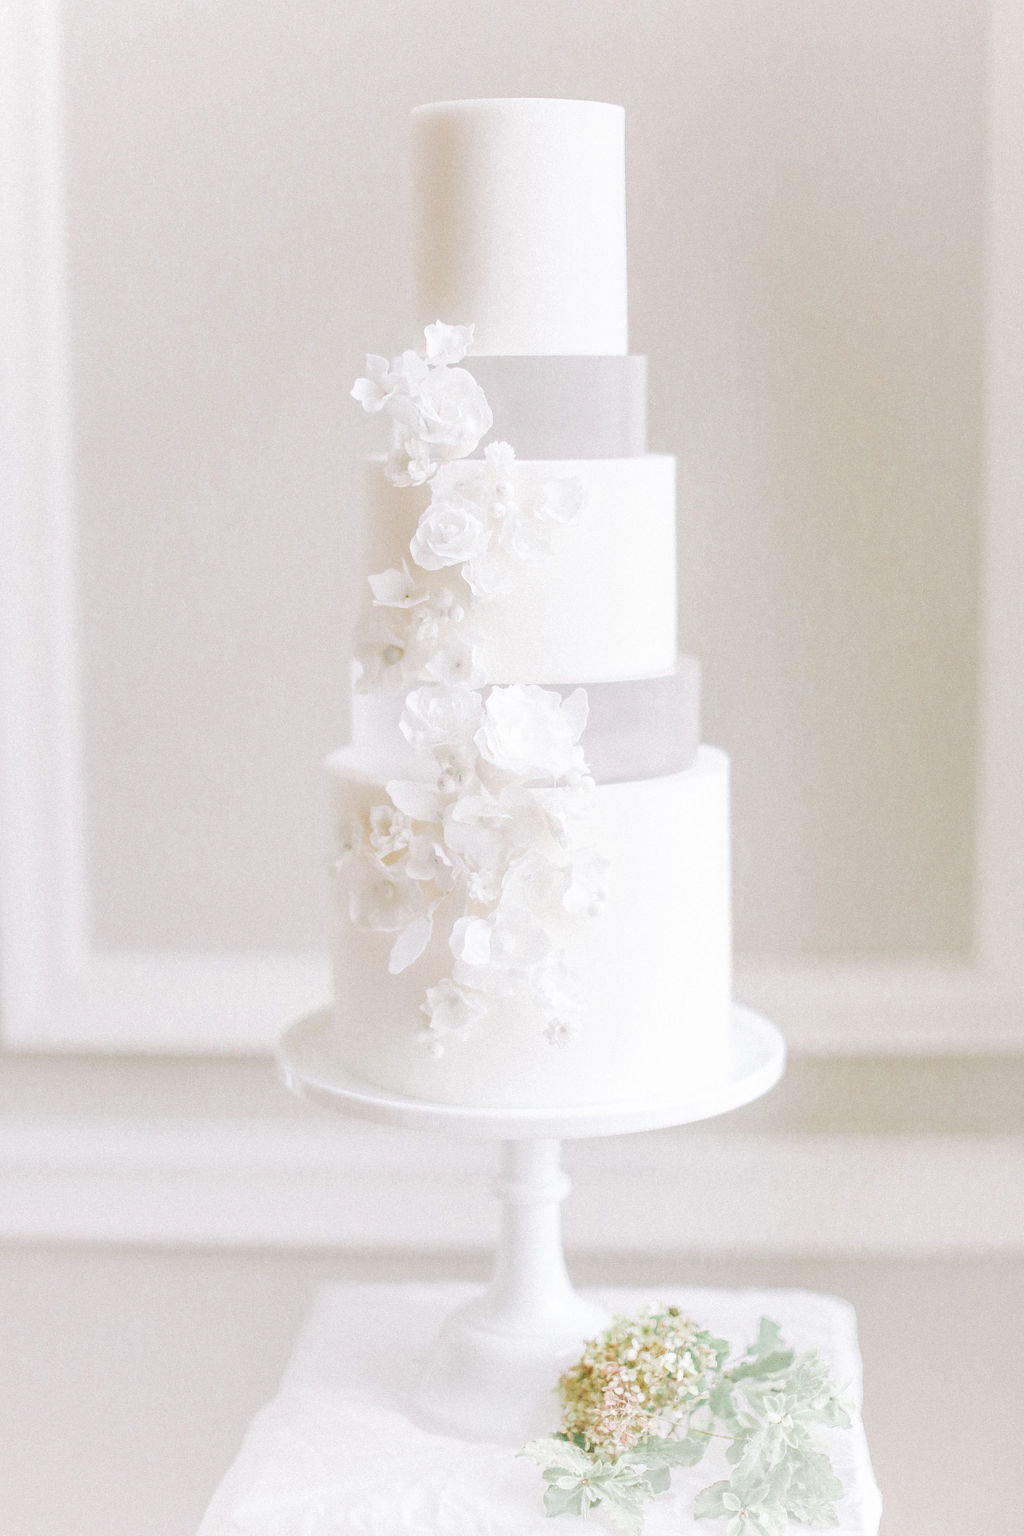 Modern Simple Wedding Cake Design Ideas